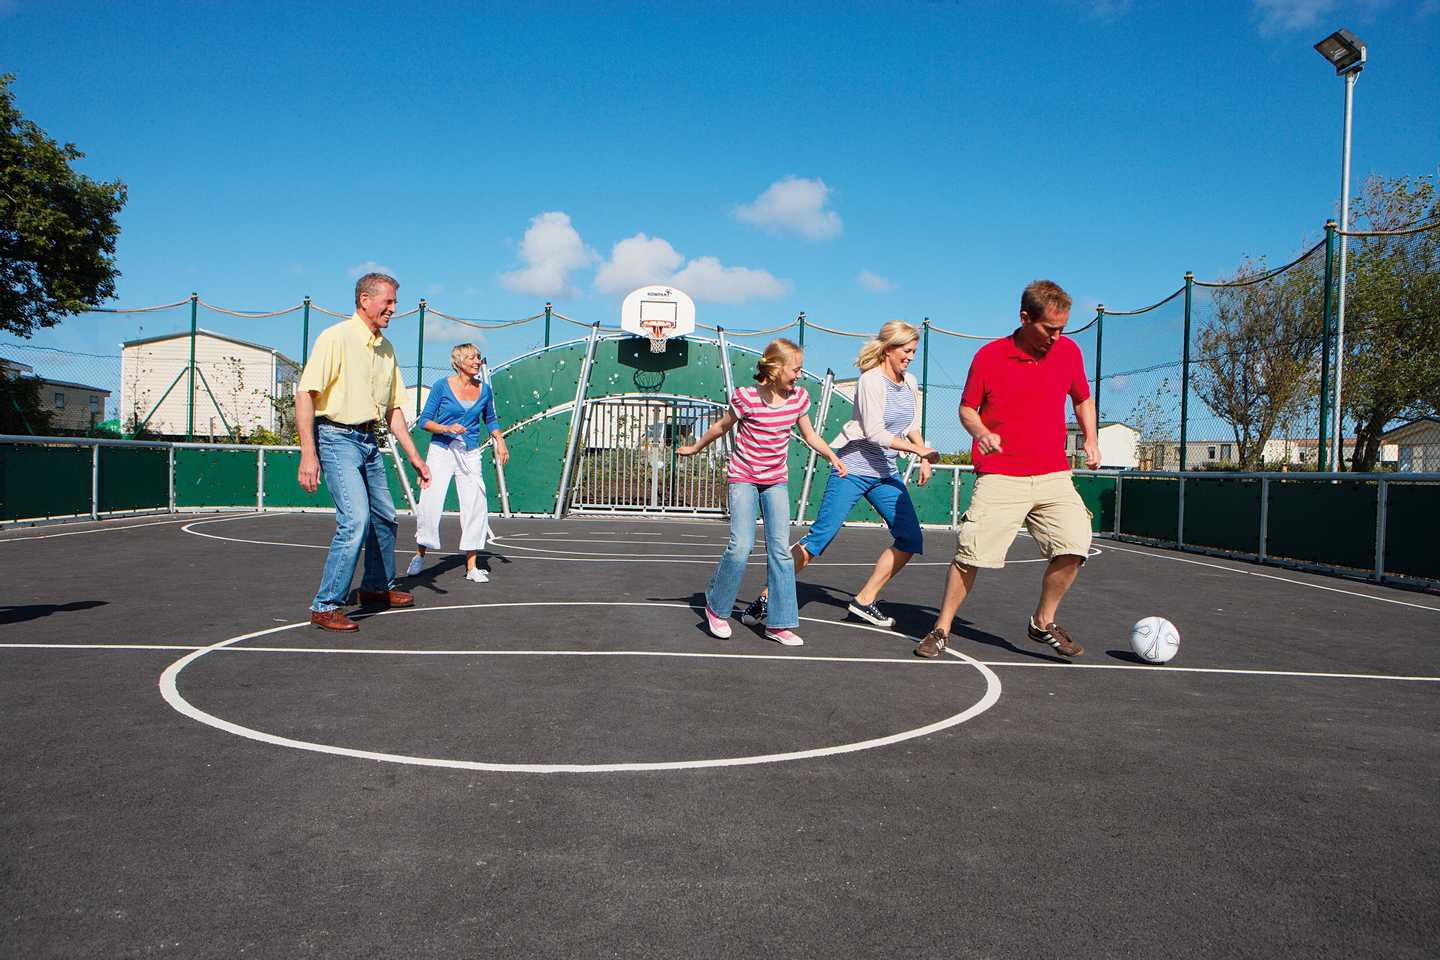 A family playing football on the all-weather multi-sports court